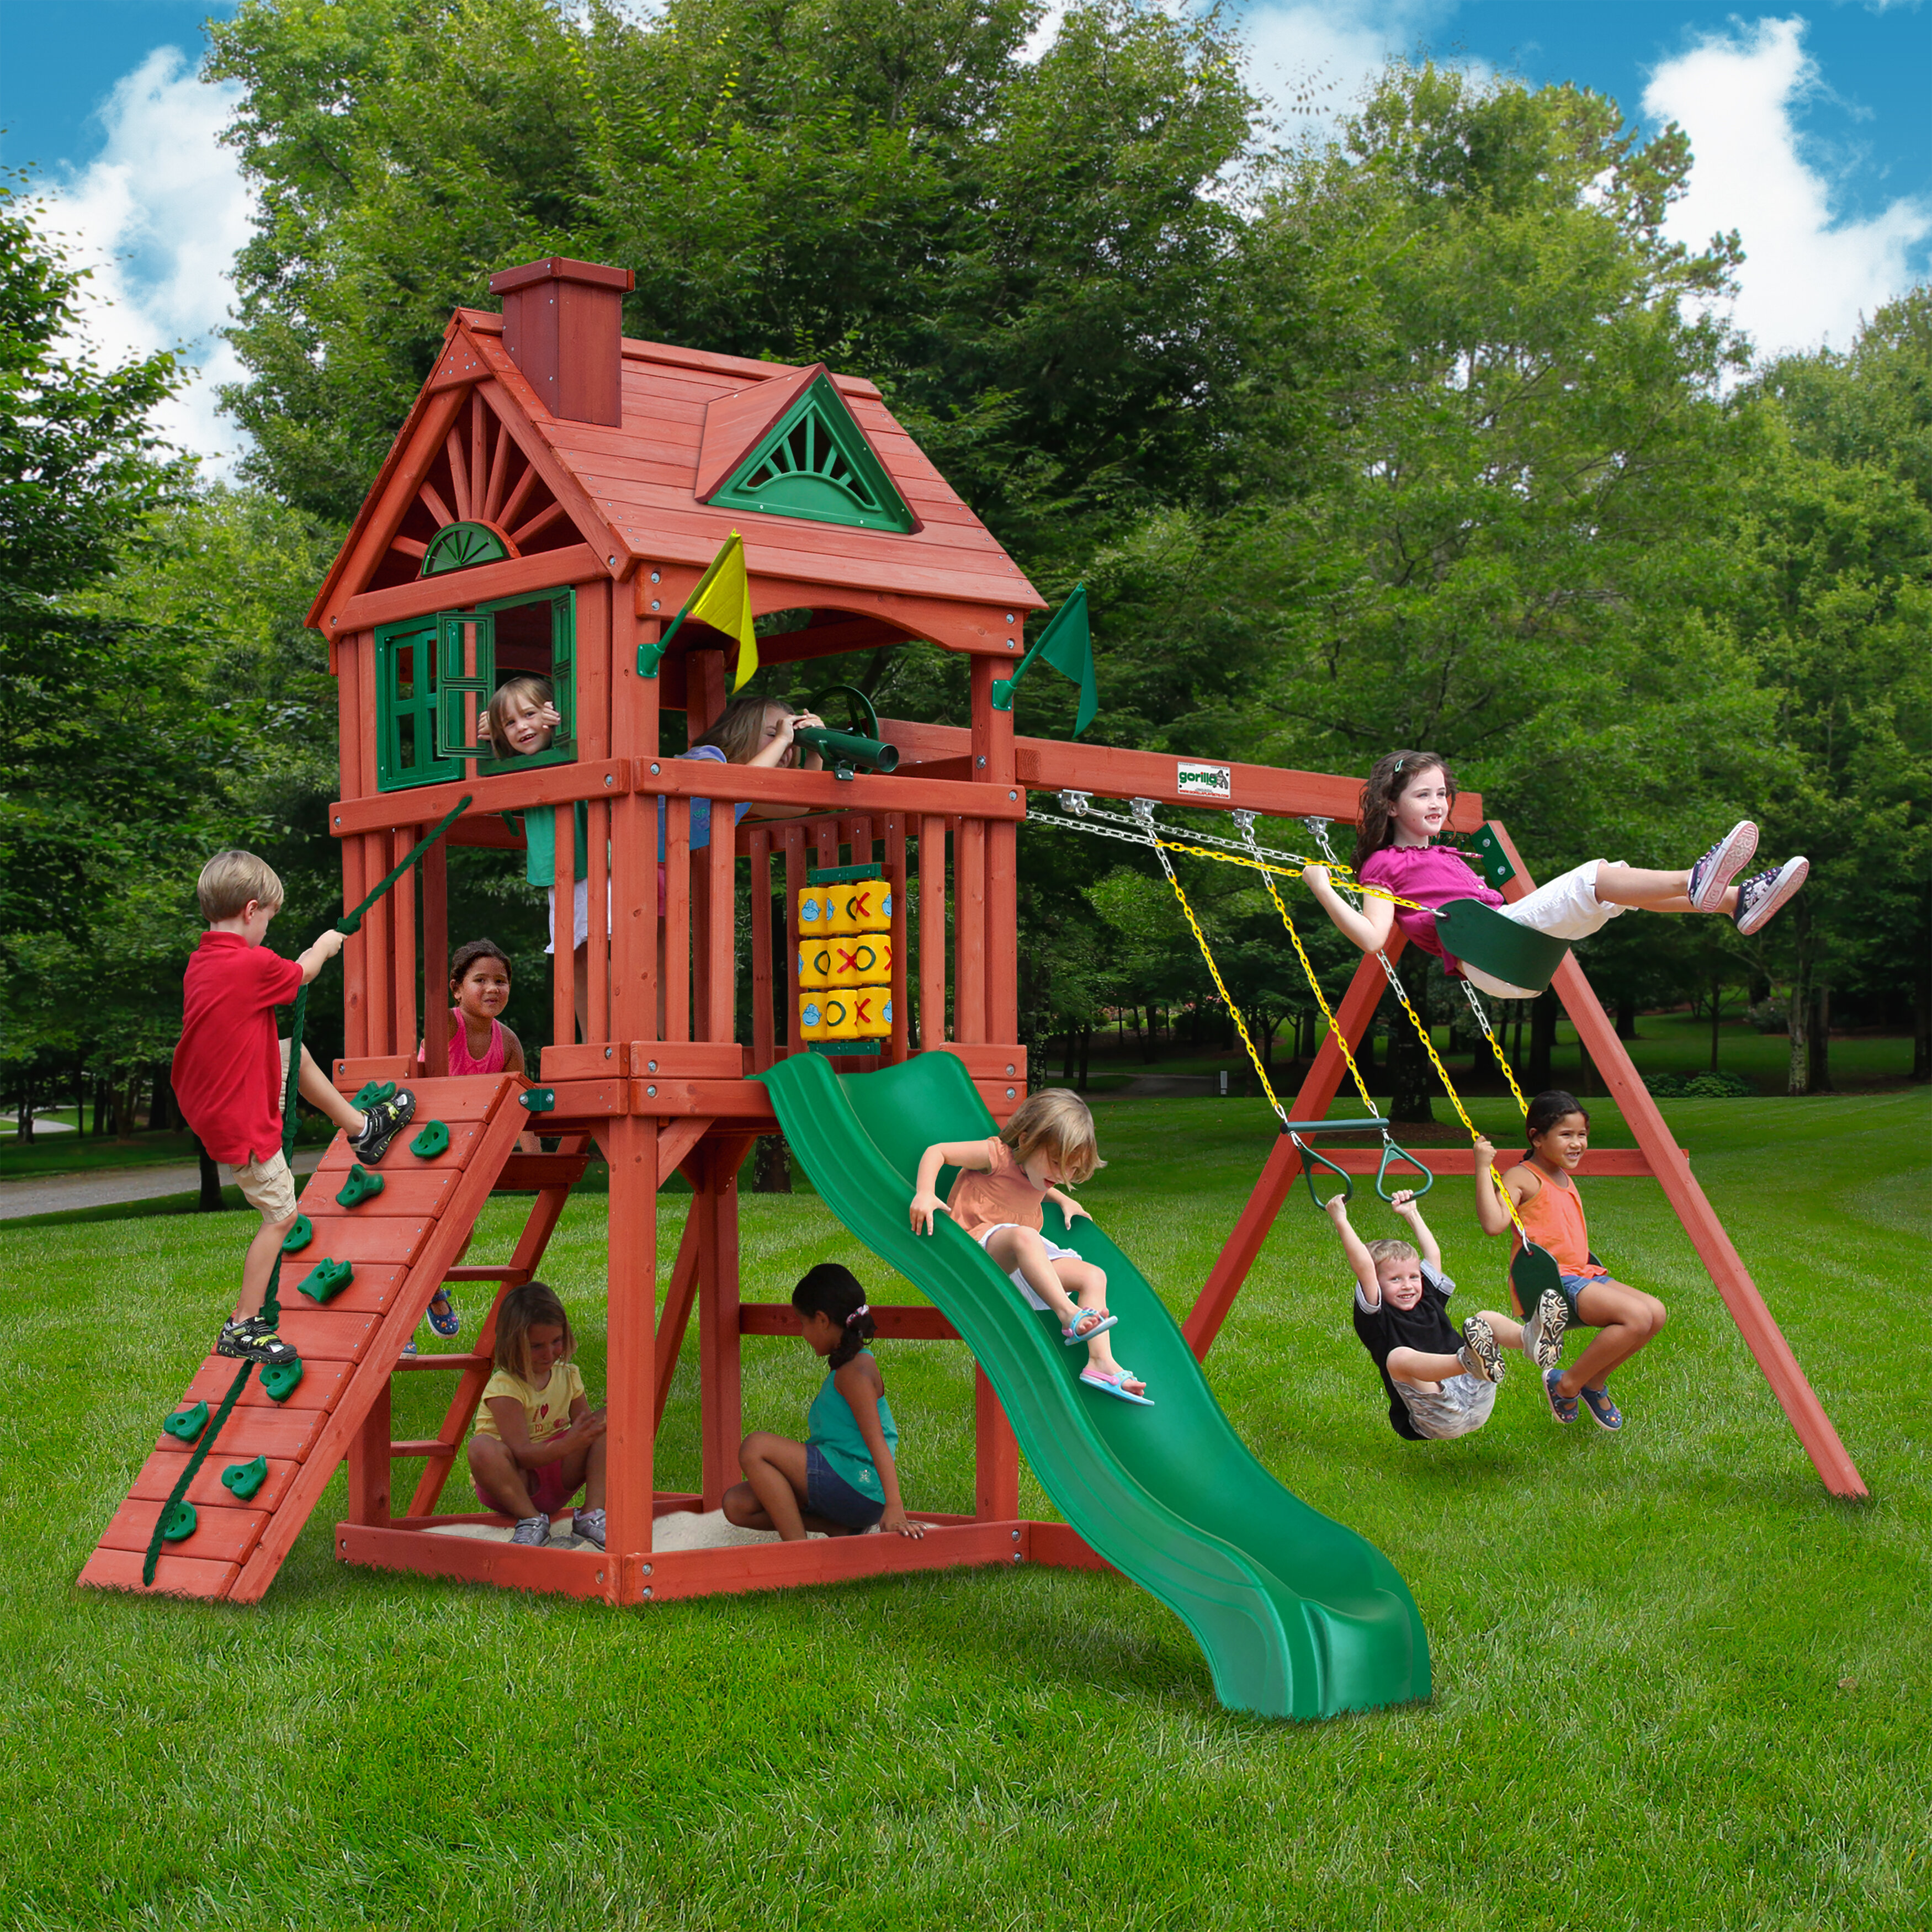 ideas furniture playground wooden playsets kitchen walmart lovely montpelier me ozark playhouse kids appealing costco sale captivating gorilla discovery set sets for cedar swing backyard